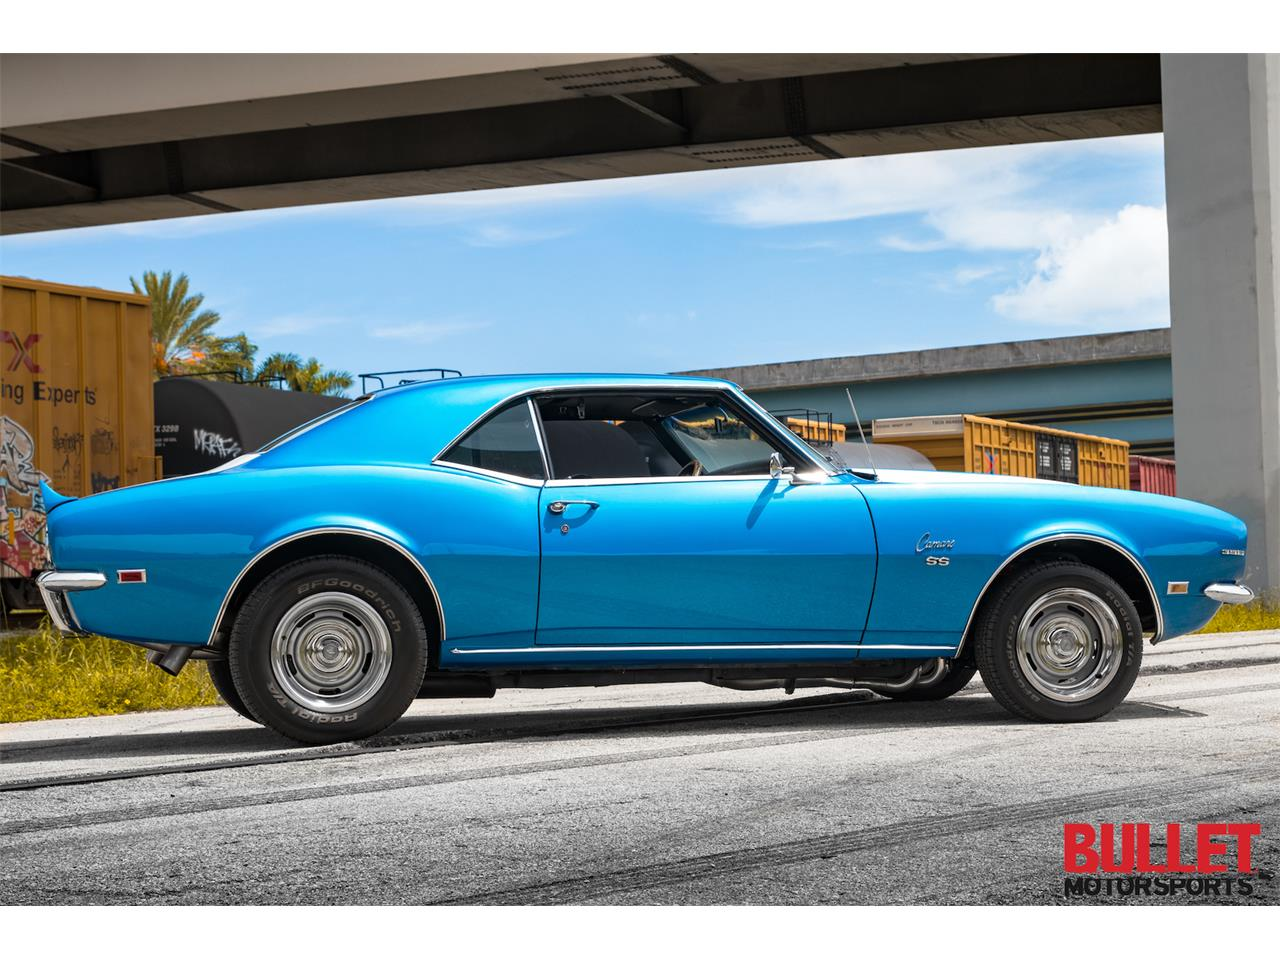 Large Picture of Classic '68 Chevrolet Camaro located in Fort Lauderdale Florida - $40,000.00 Offered by Bullet Motorsports Inc - O7VM